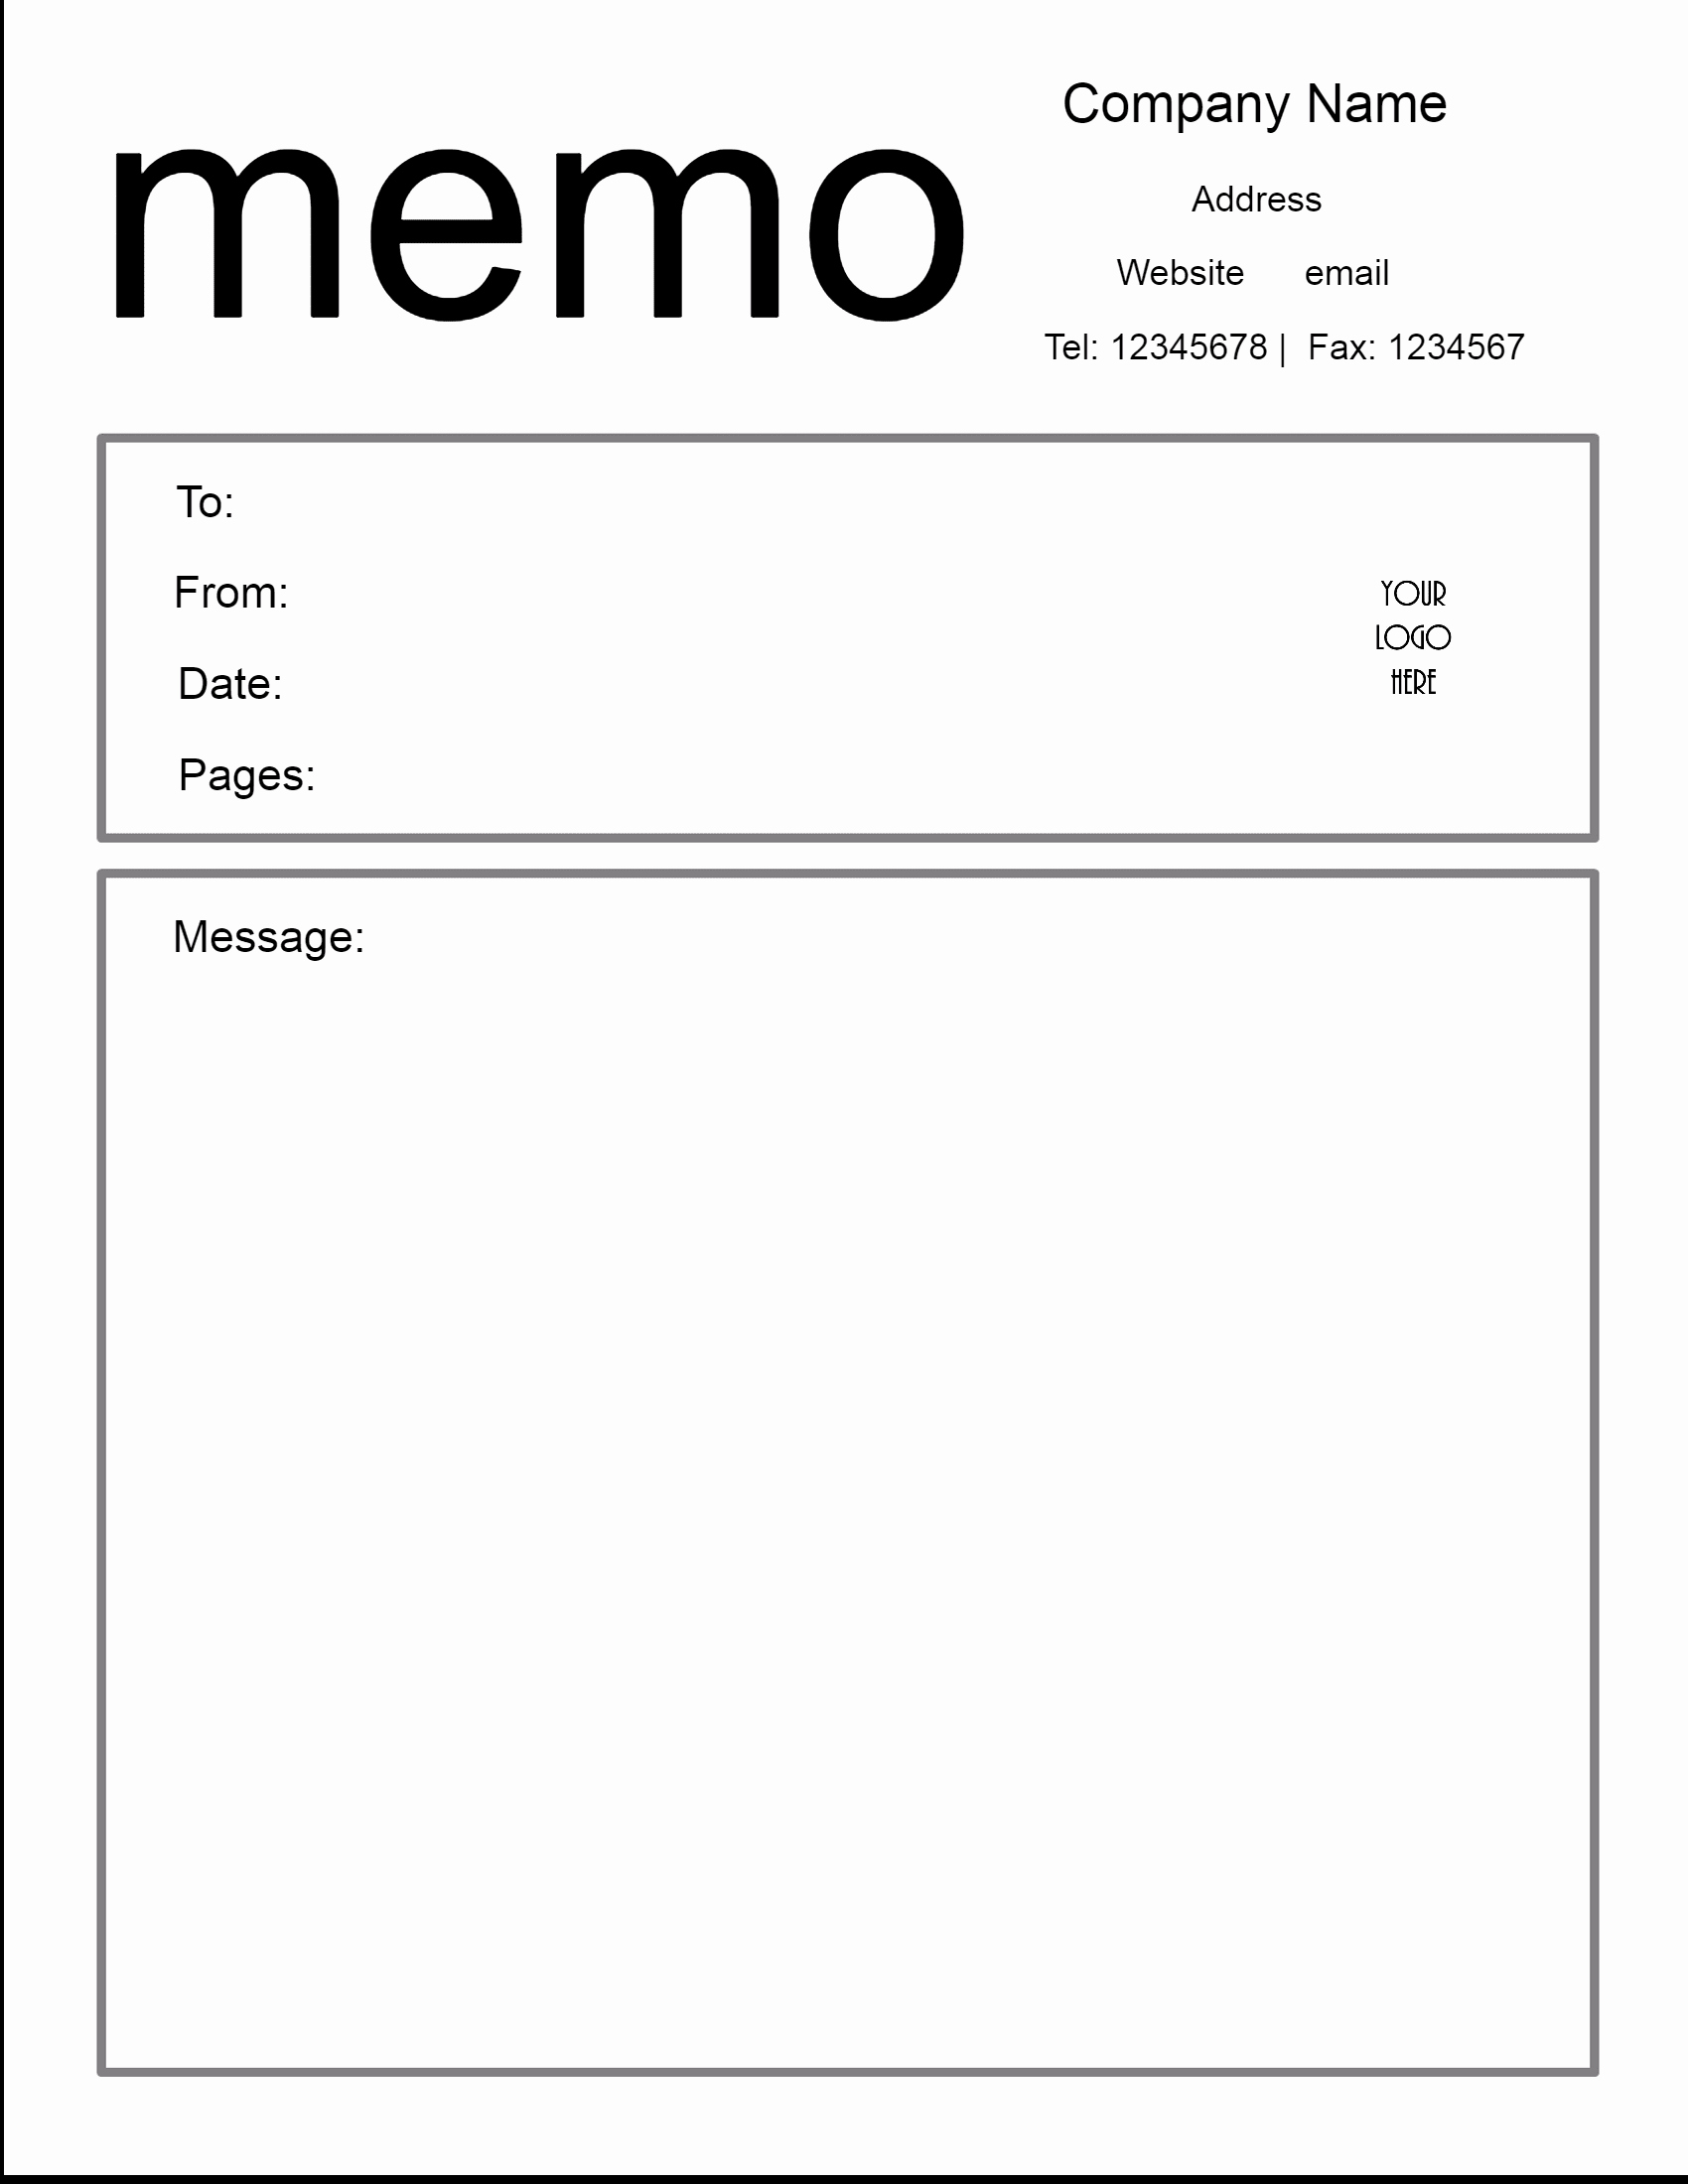 Free Downloadable Templates for Word Fresh Free Microsoft Word Memo Template